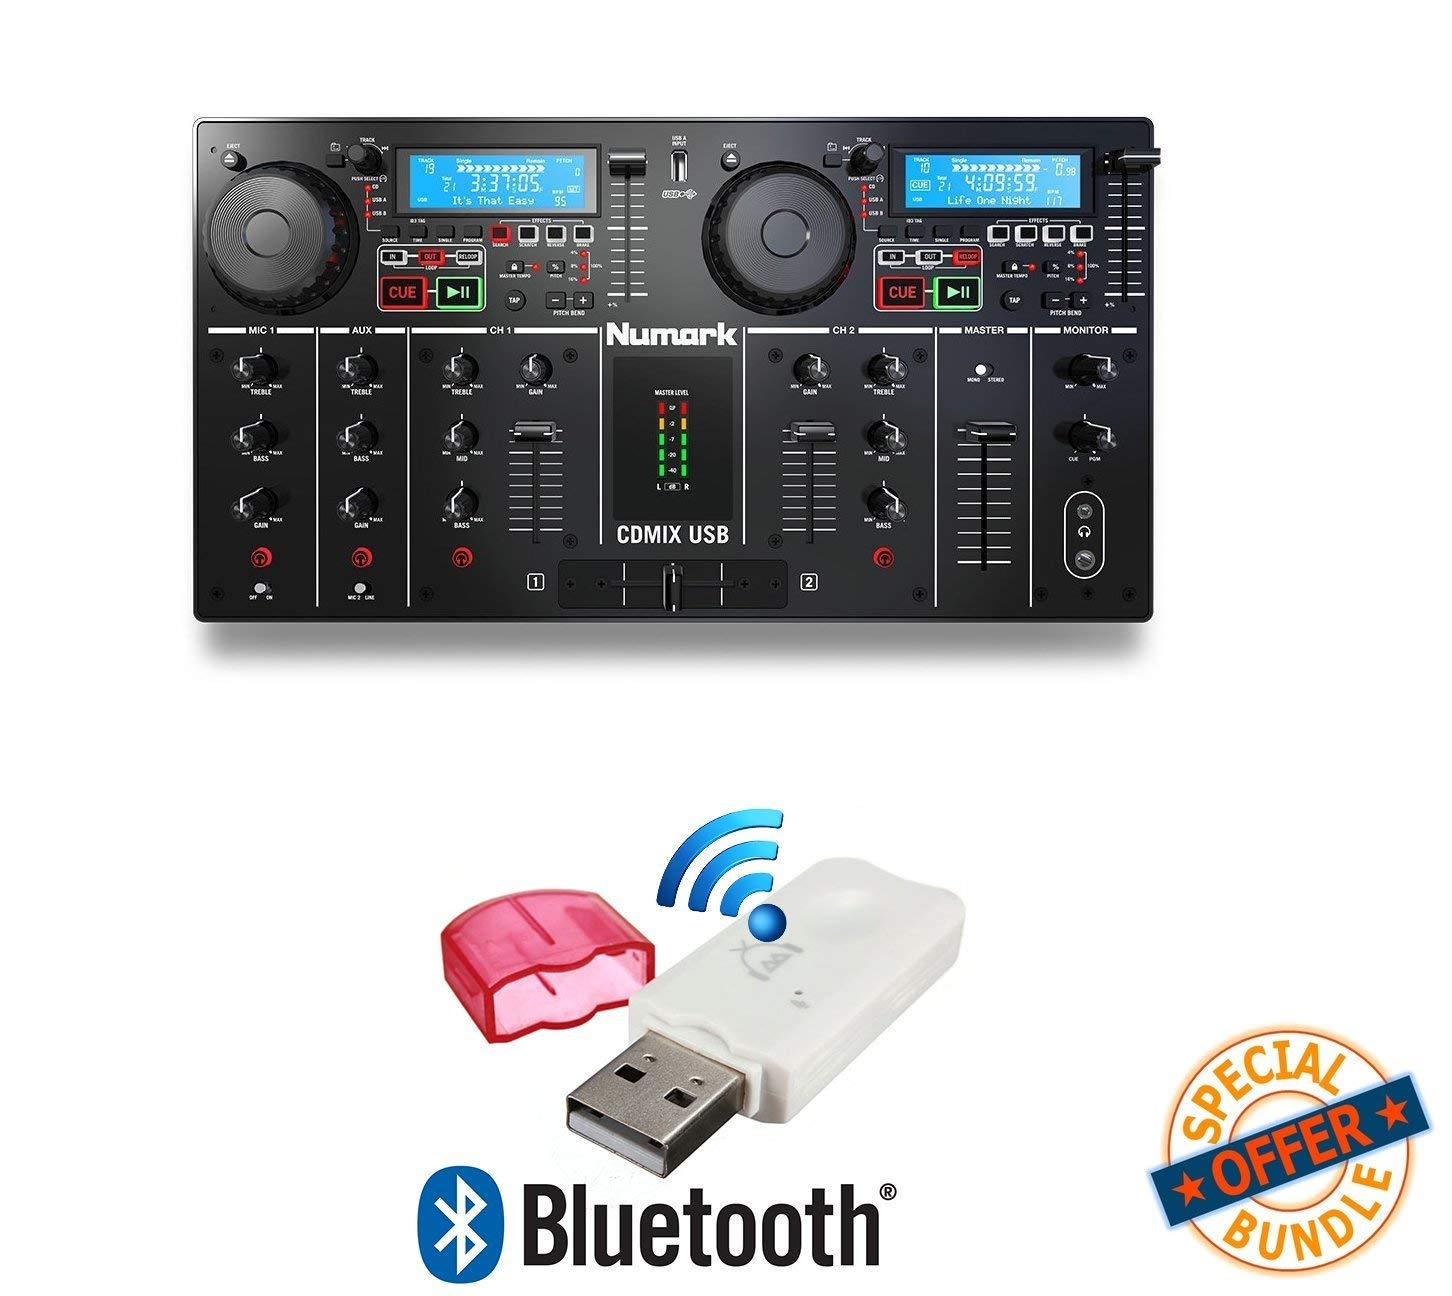 Numark CDMIX USB Self‑Contained DJ System W/ Free USB Bluetooth Music Streaming Wireless Receiver W/ Free USB Bluetooth Music Streaming Wireless Receiver